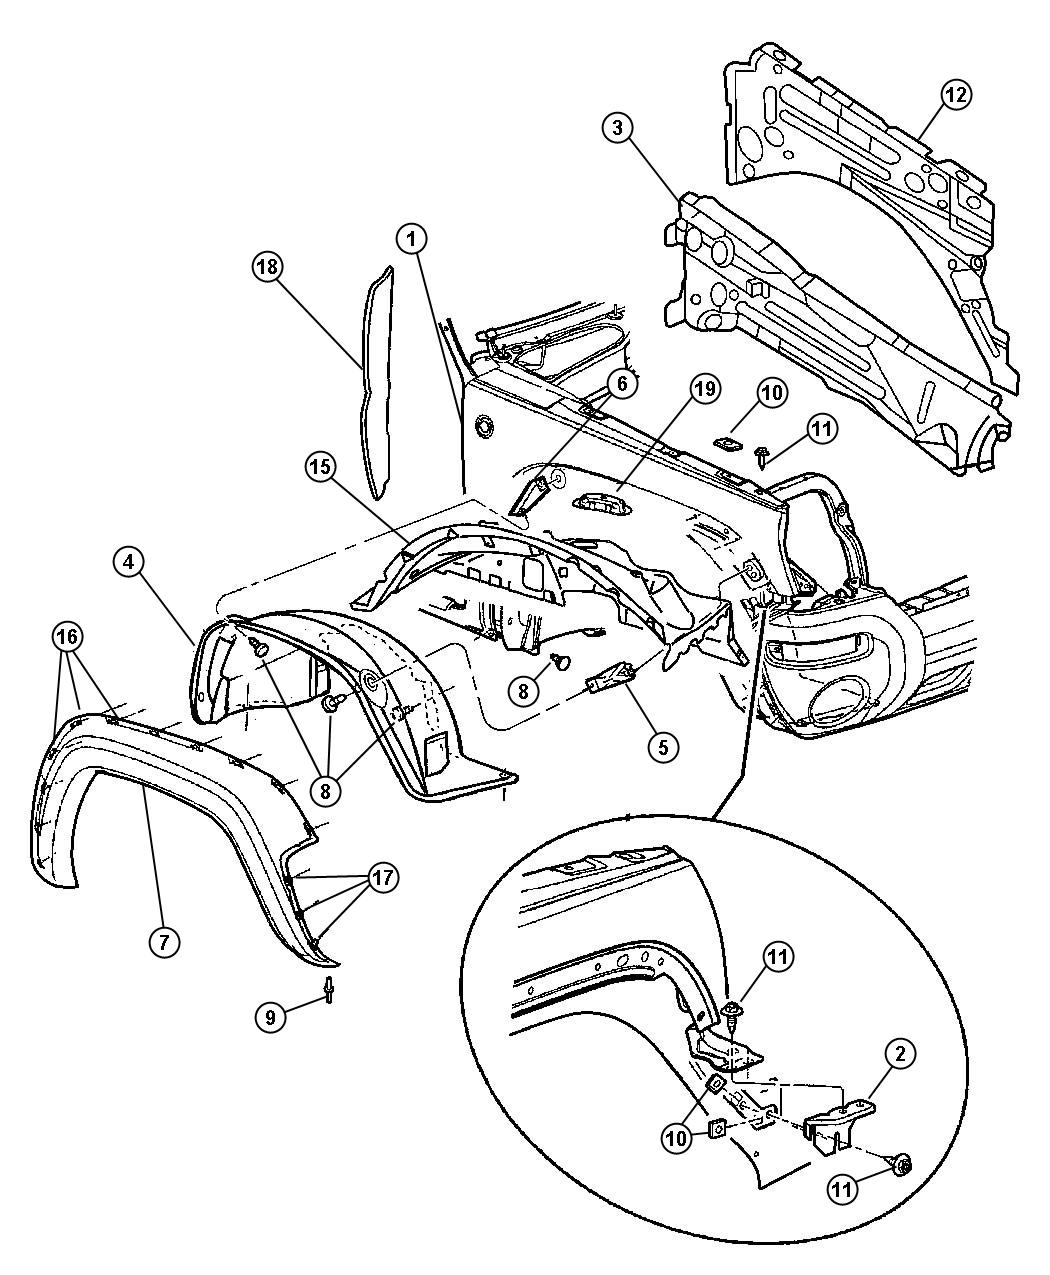 25 Jeep Liberty Body Parts Diagram